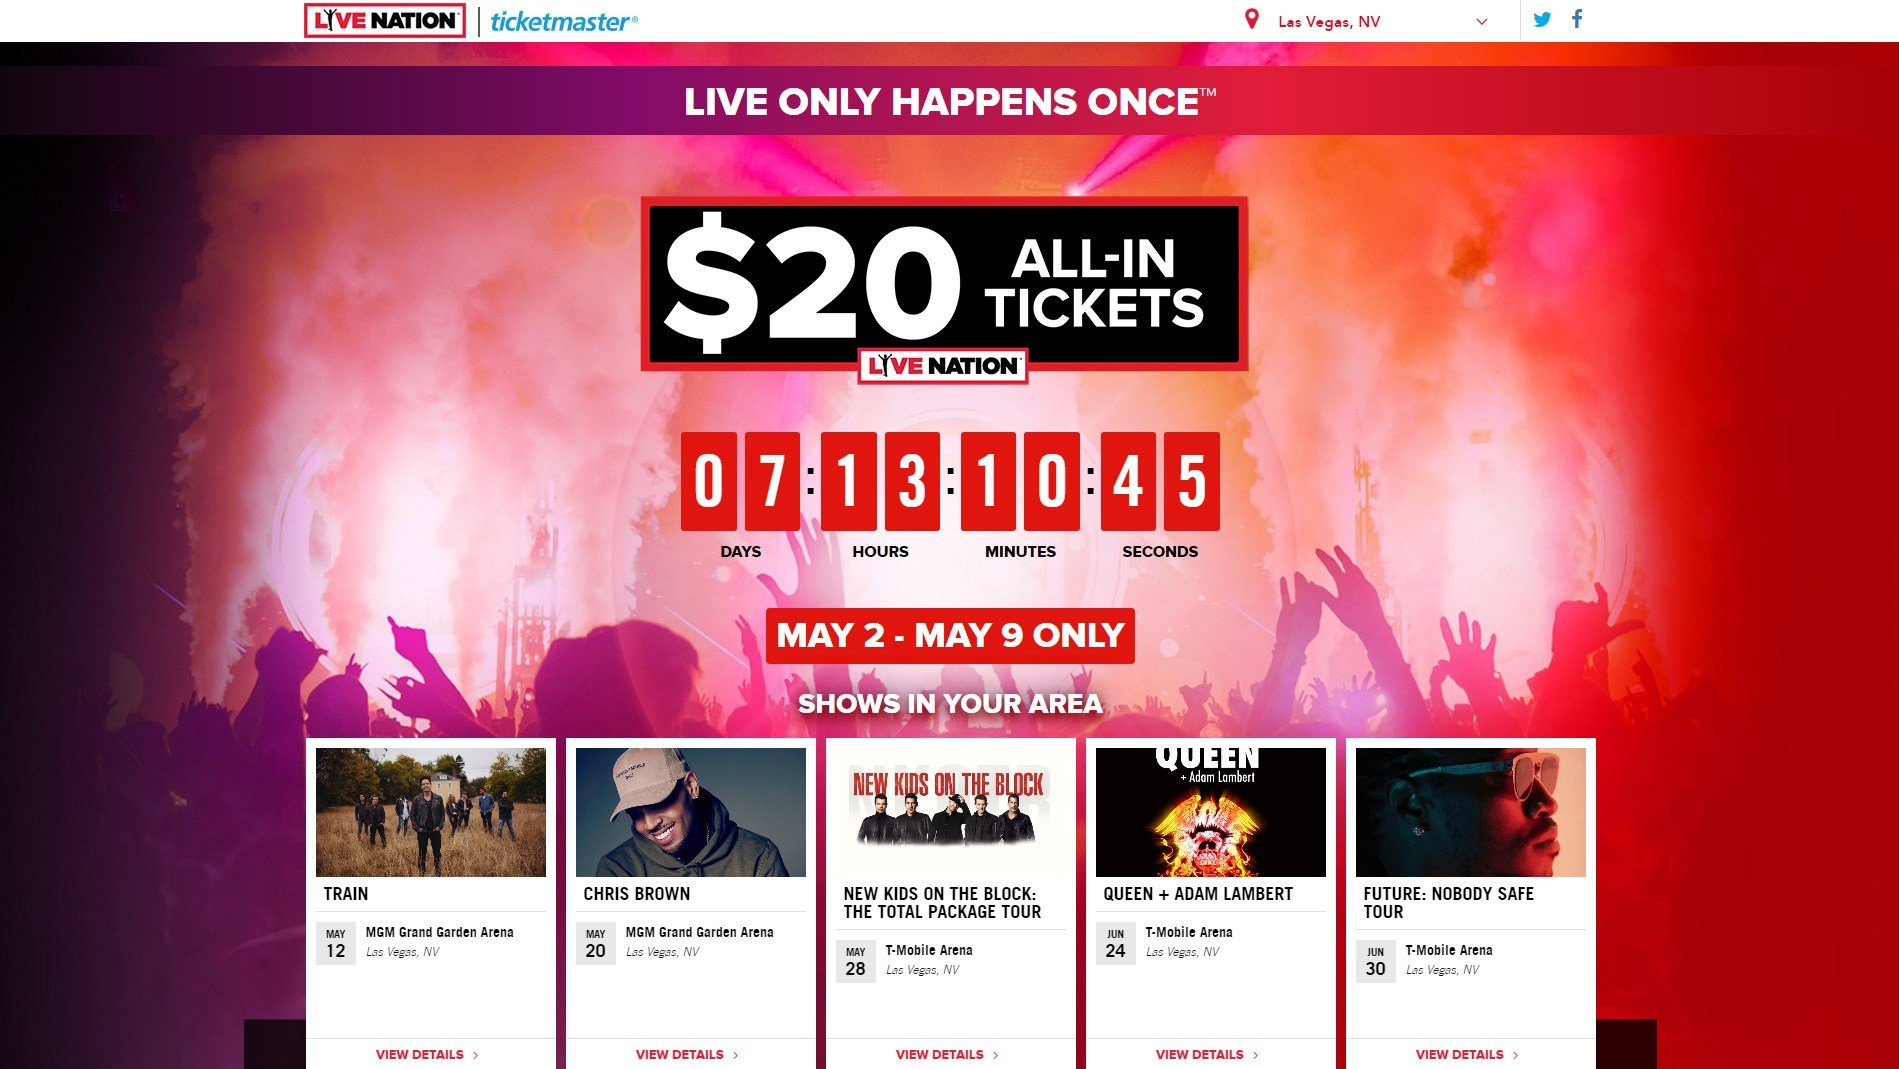 Live Nation began offering tickets to shows for $20 on May 2, 2017. (Source: Live Nation/Ticketmaster)